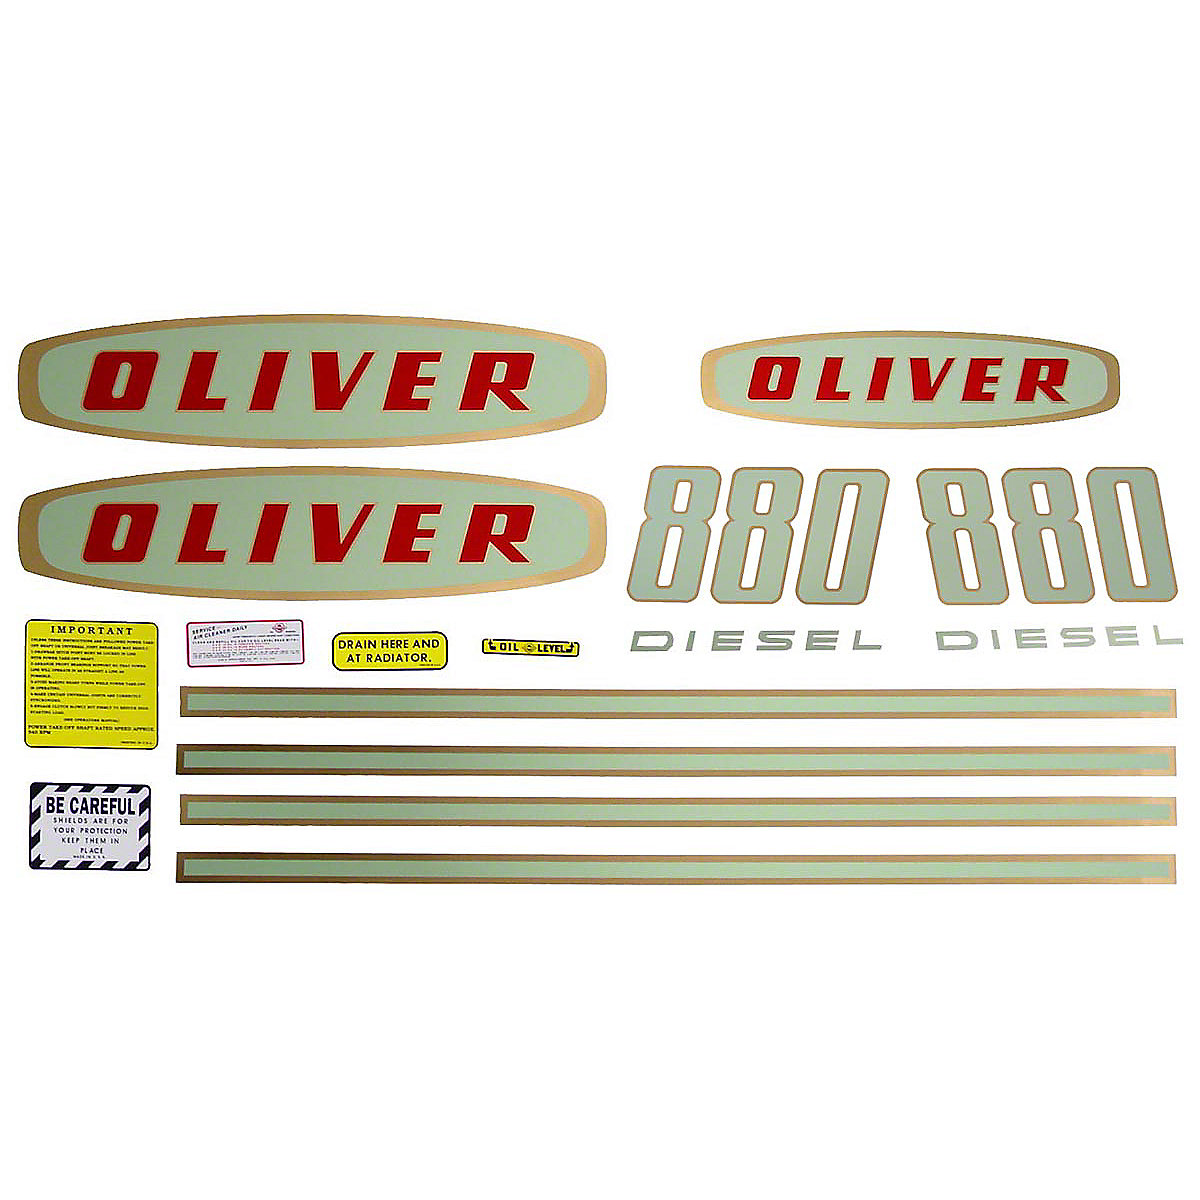 ... Mylar Decal Set For Oliver 880 Diesel Tractors. Up to SN#: 112250.